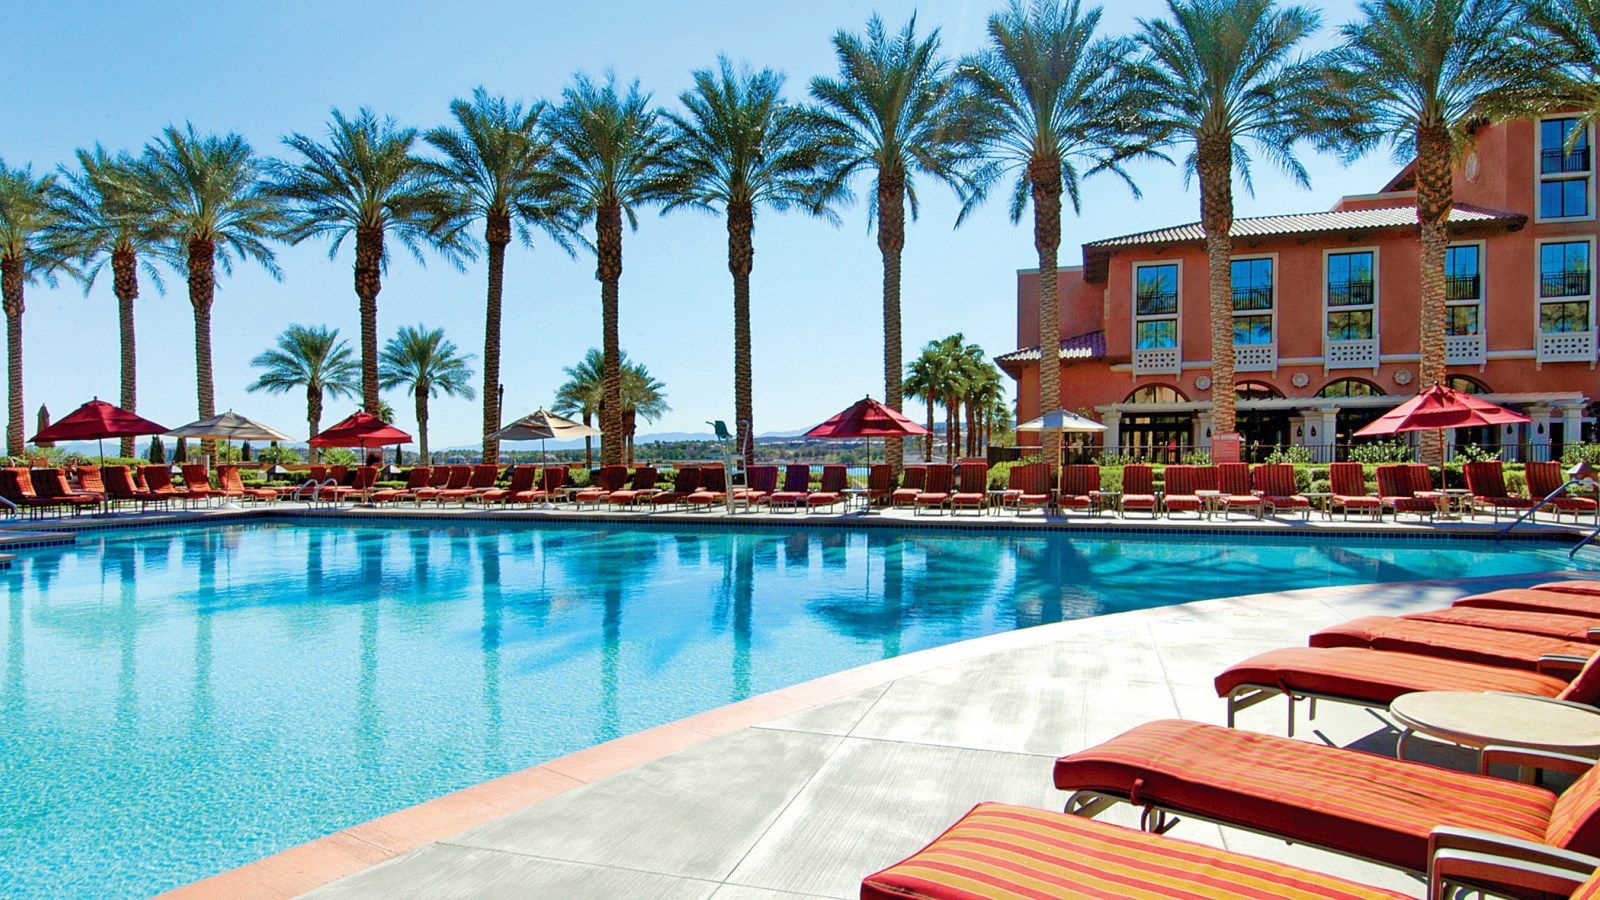 Things to do in Lake Las Vegas - Pool